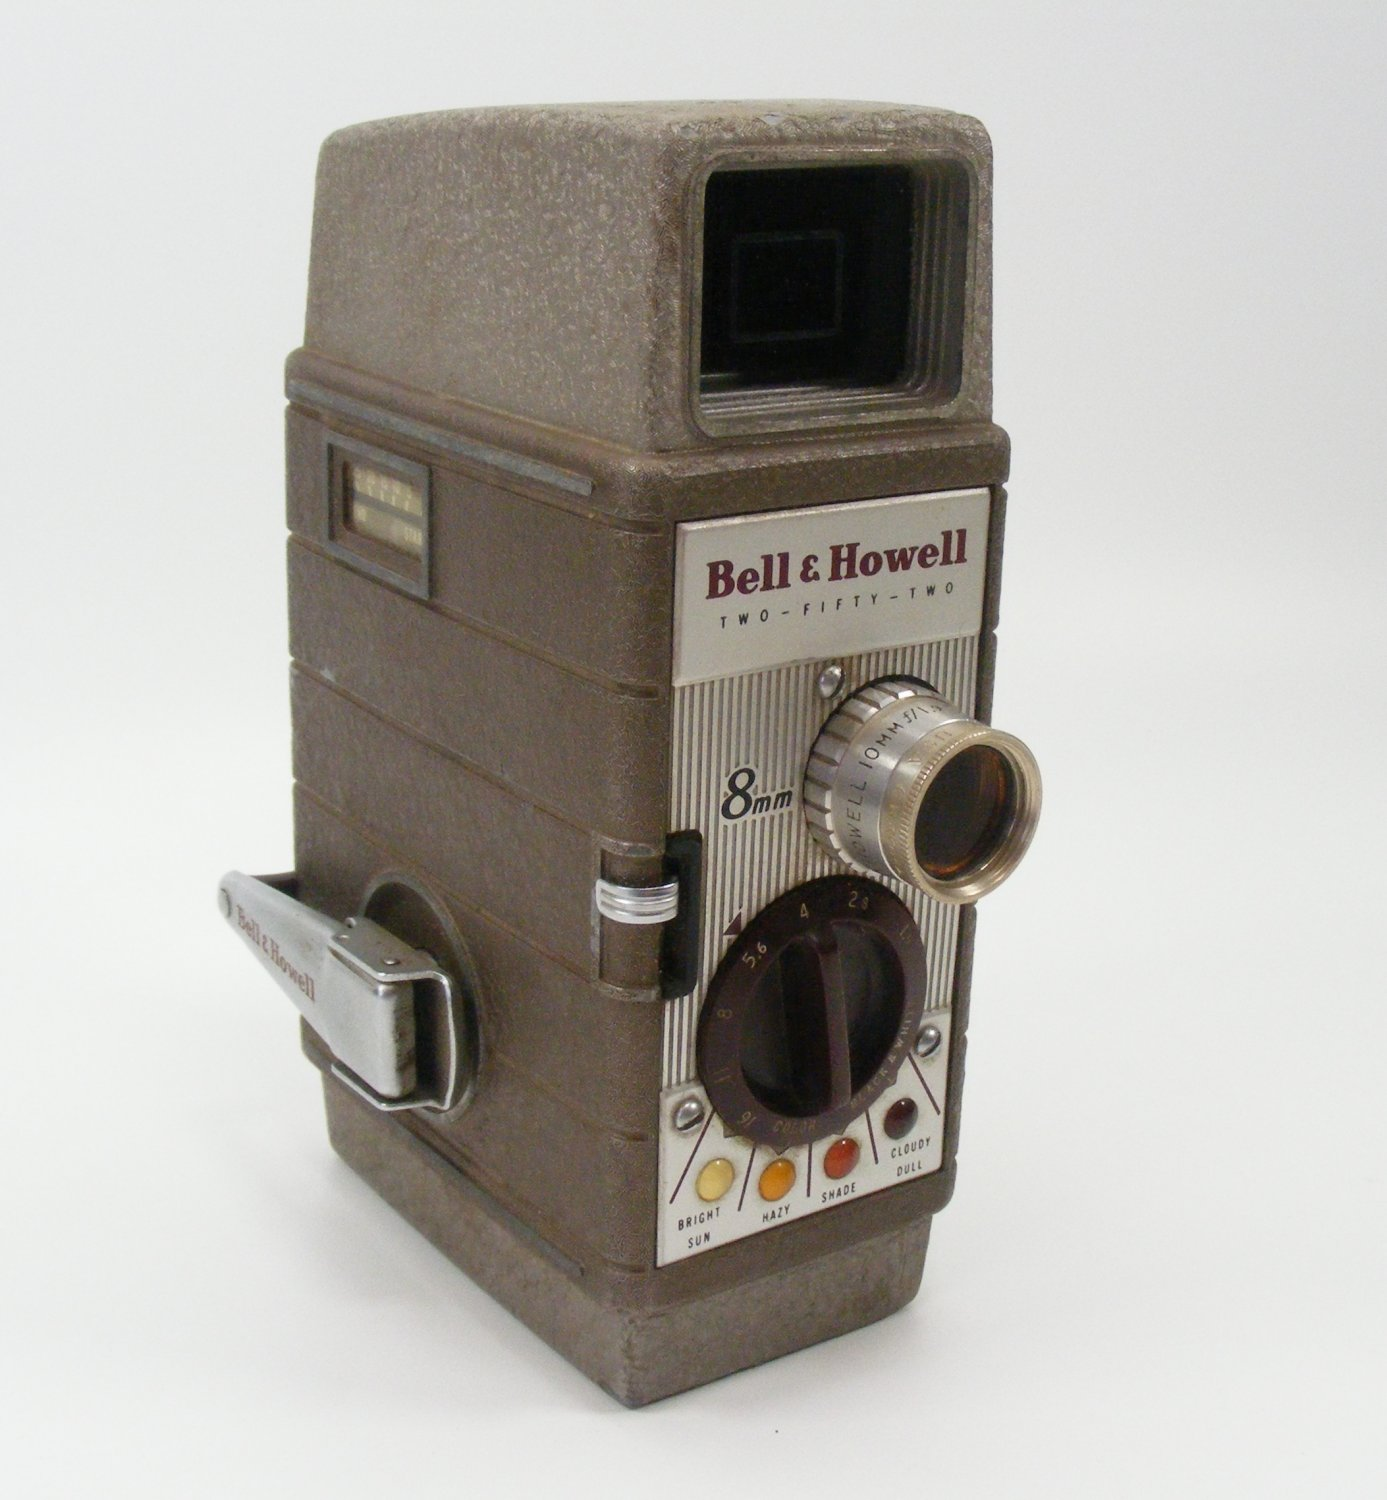 Bell & Howell Model Two Fifty Two Film Movie Camera 8mm ,1960's